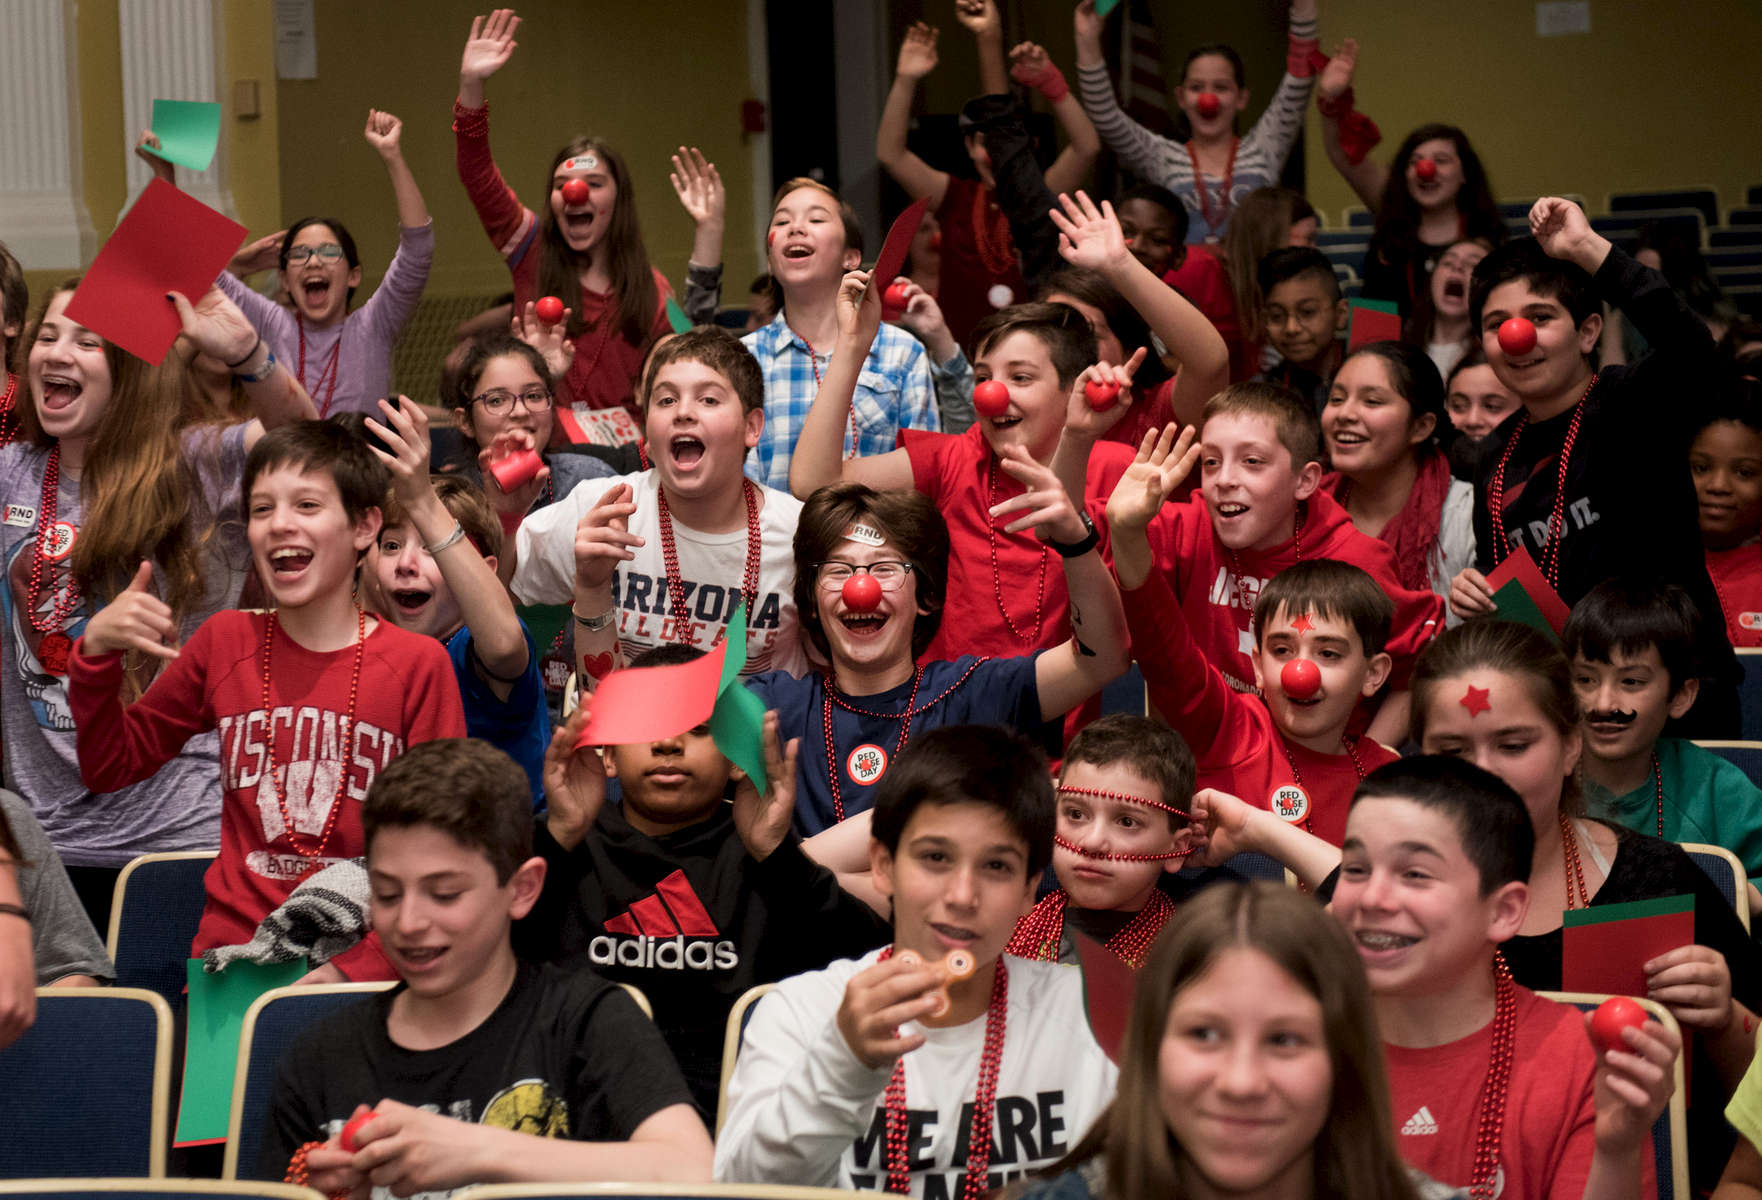 WWE Superstar Darren Young and Ambassador Dana Warrior speak to an auditorium filled with students at Elm Place Middle School in Highland Park during an event for Red Nose Day Awareness, Thursday, April 27, 2017. (Photo by Alex Garcia/AP Images for Discovery Education)